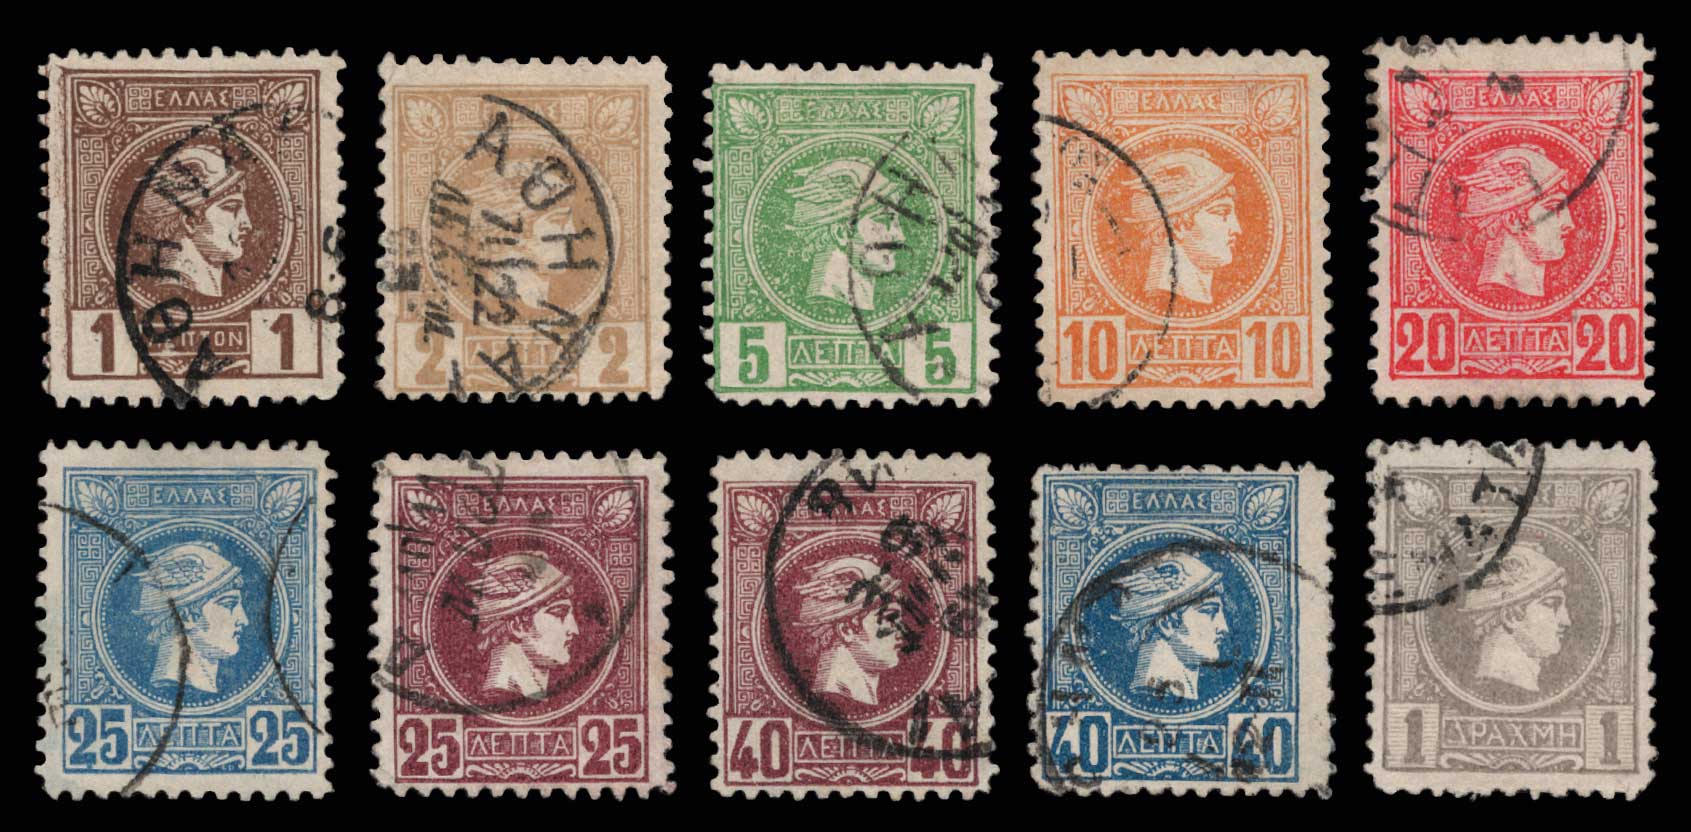 Lot 429 - -  SMALL HERMES HEAD ATHENSPRINTING - 2nd PERIOD -  Athens Auctions Public Auction 88 General Stamp Sale